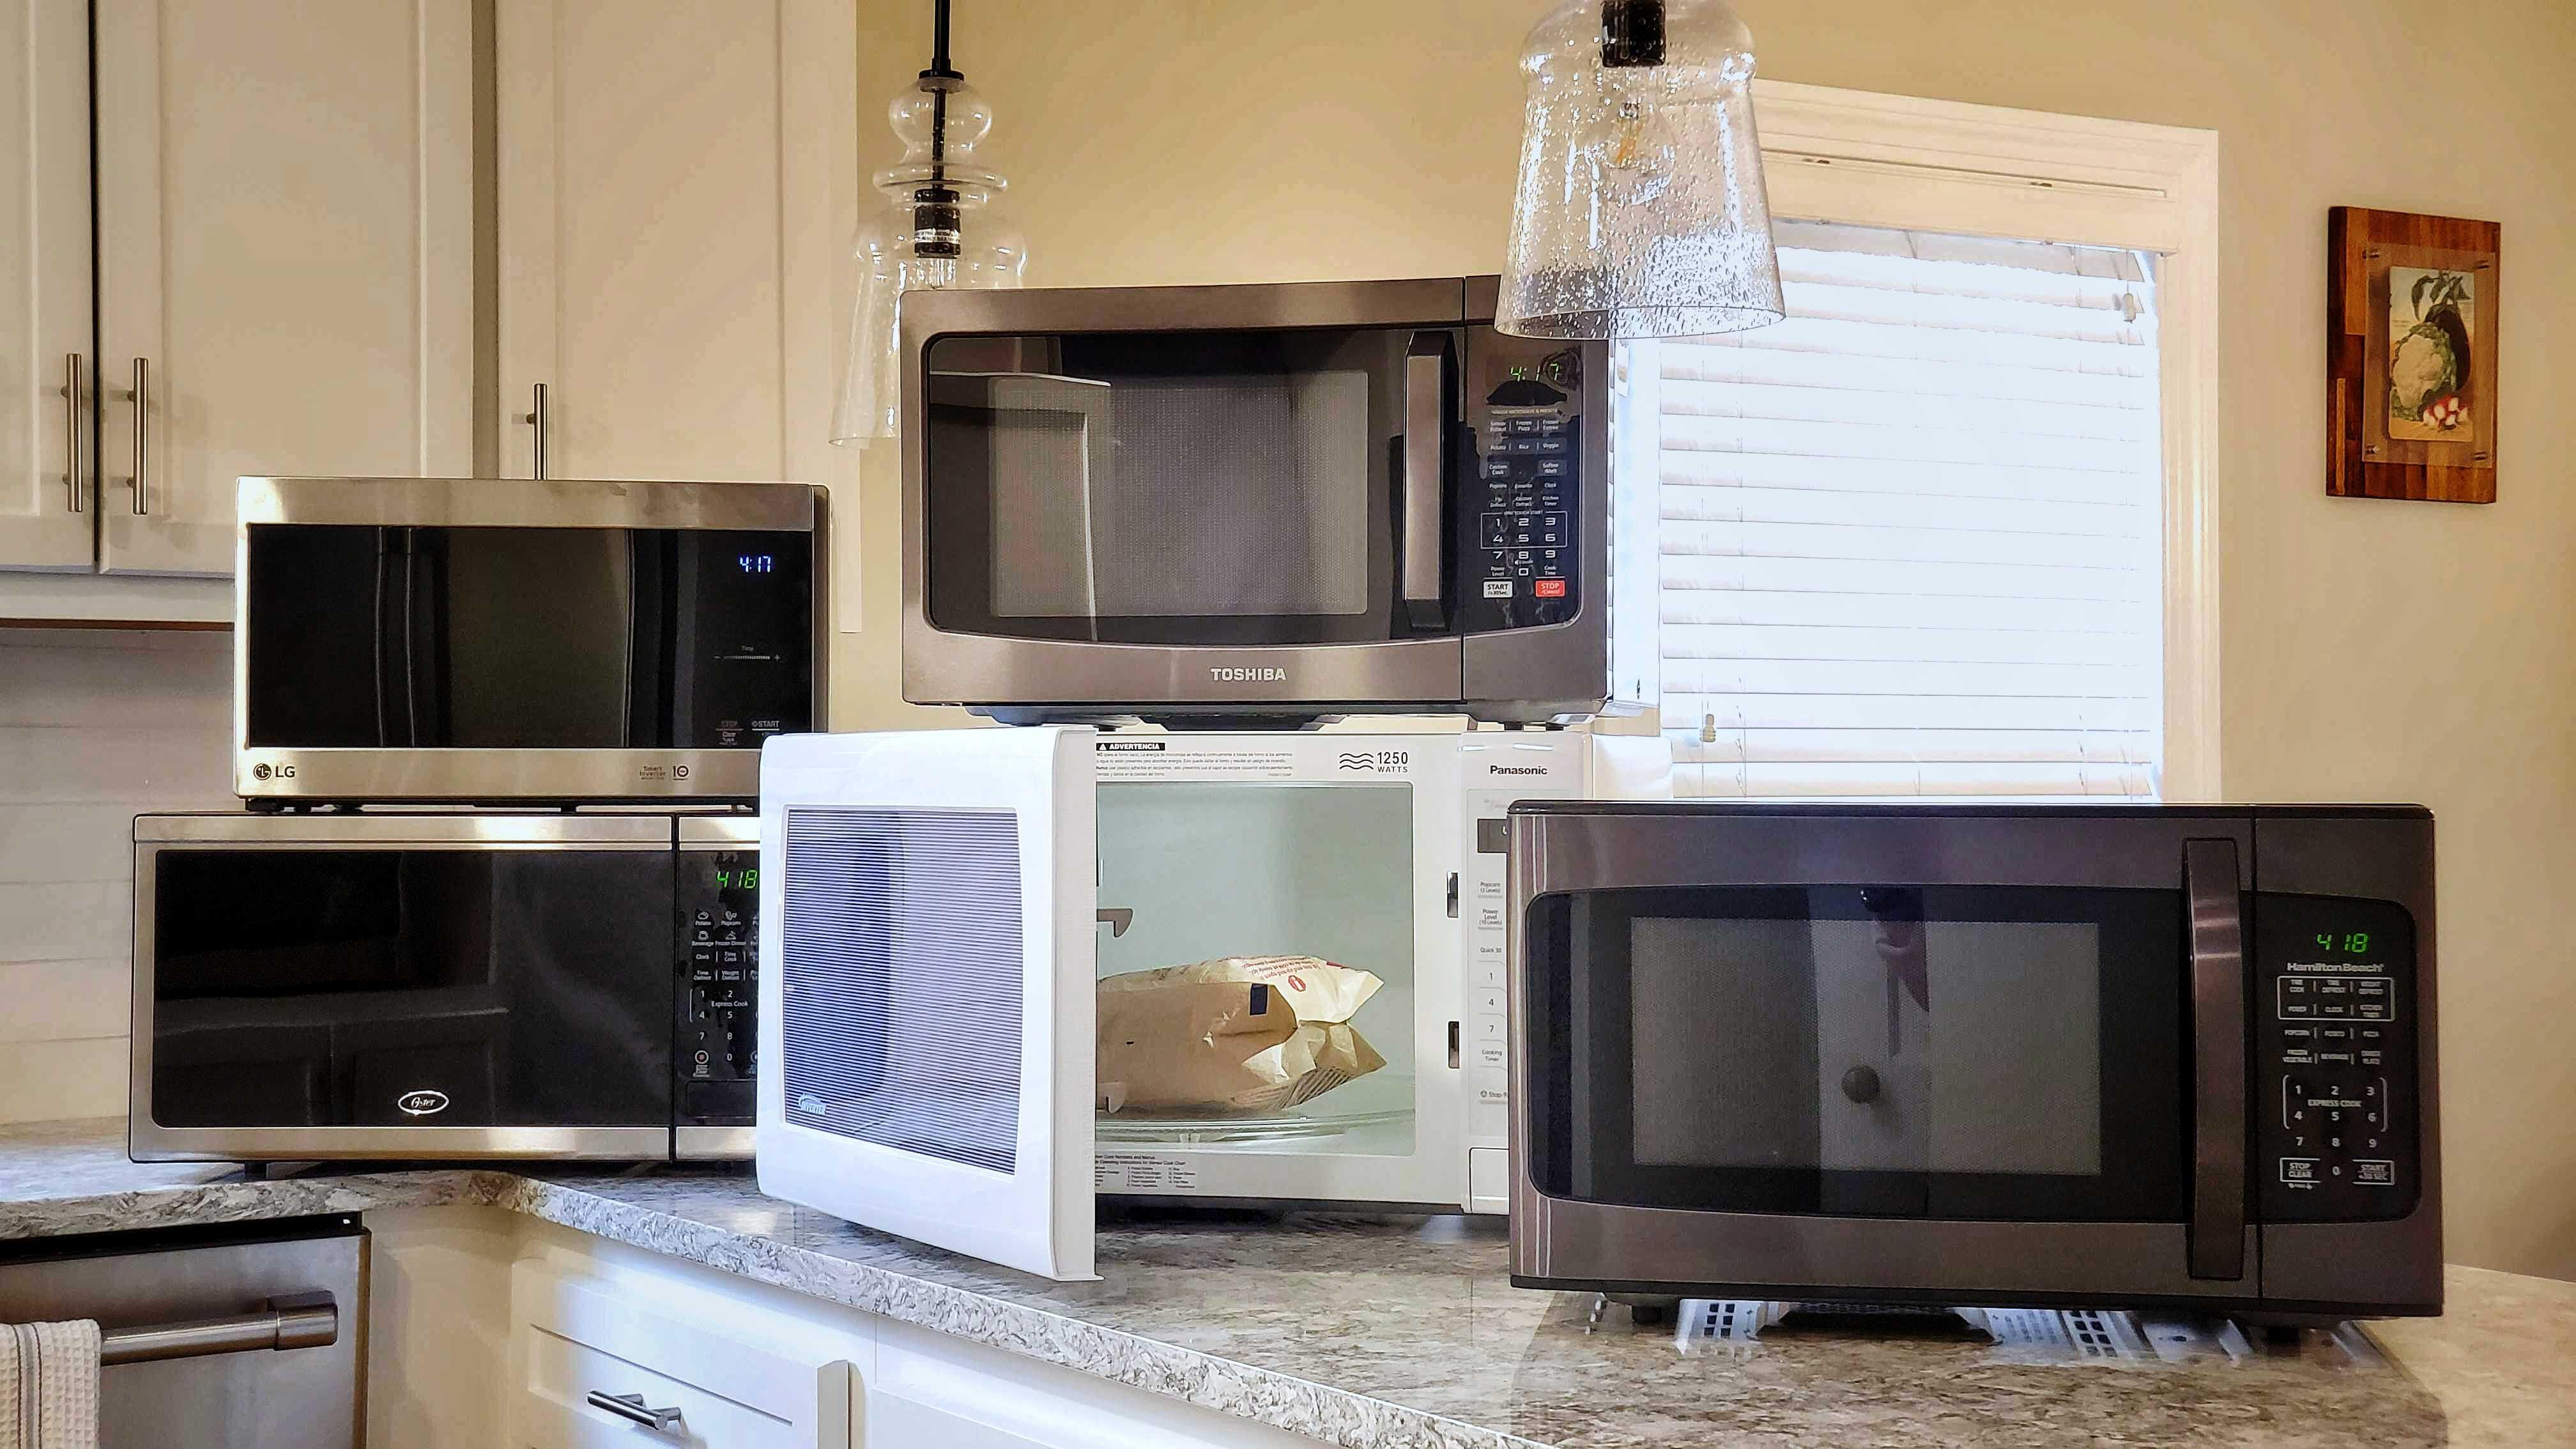 microwaves cnet home cnet